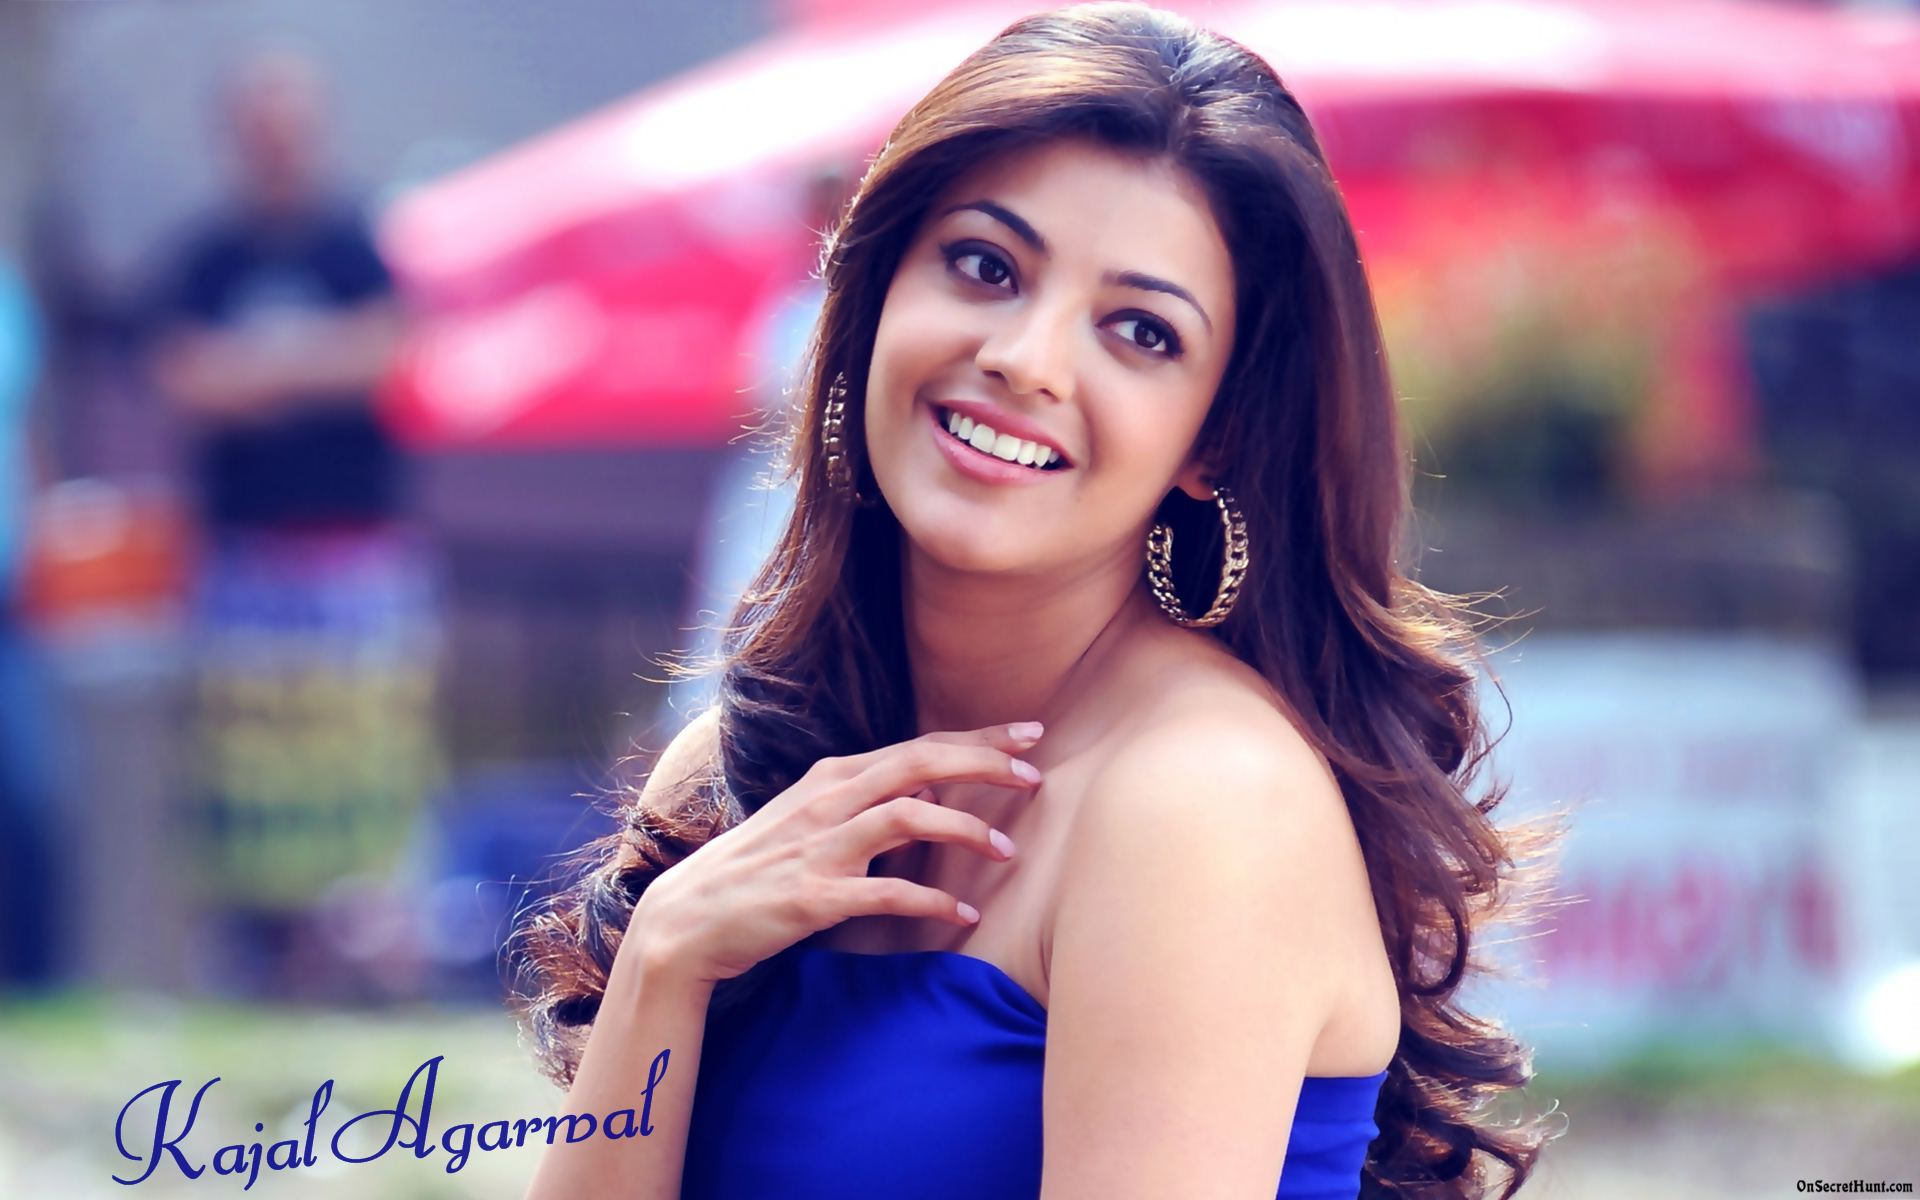 Kajal Agarwal Wallpapers & Bio